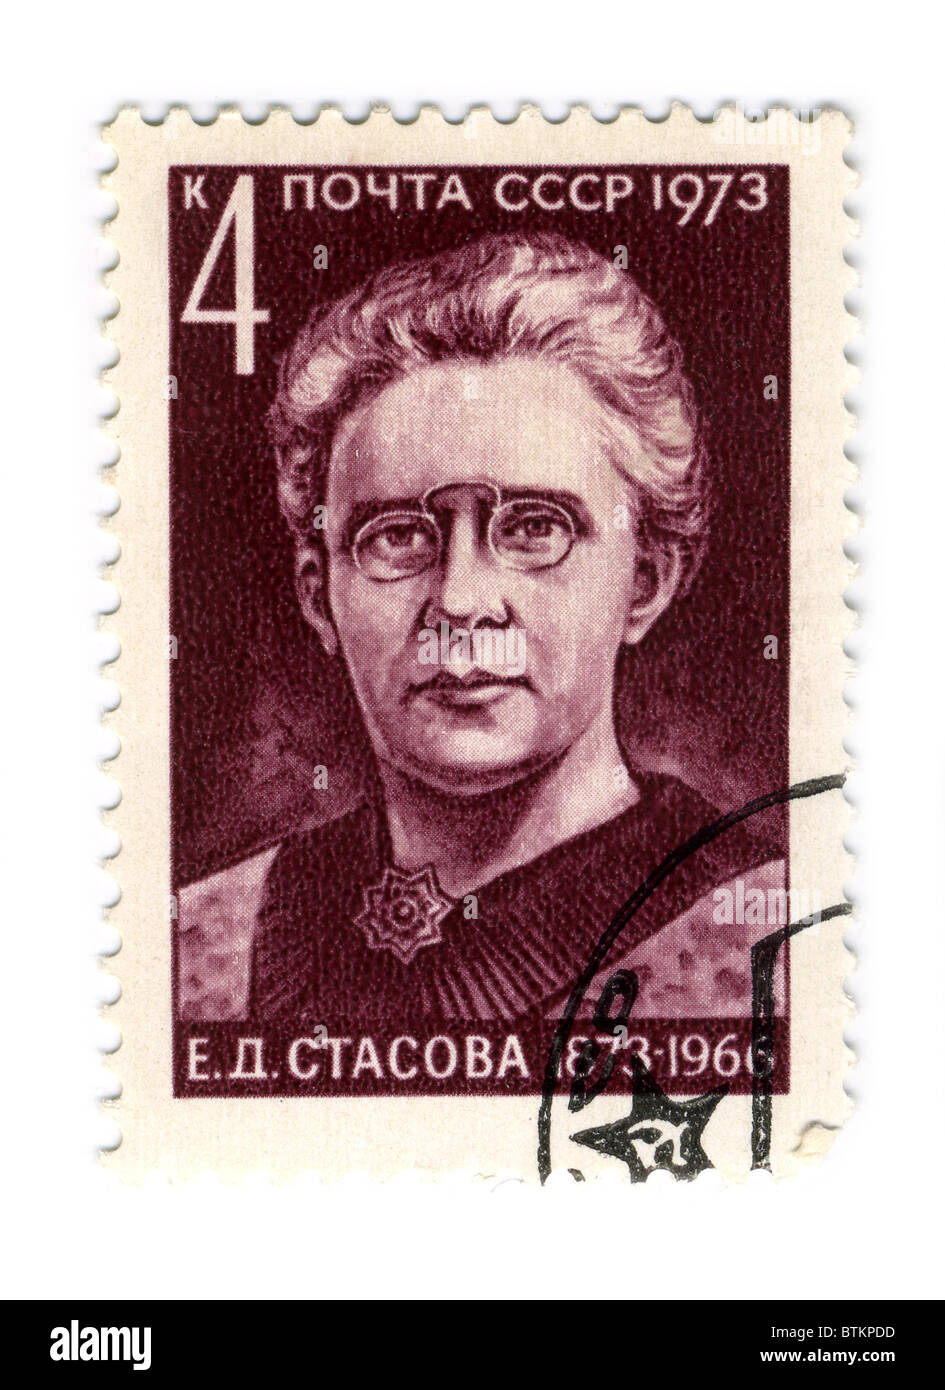 USSR - CIRCA 1973: An USSR Used Postage Stamp showing Portrait of Russian Communist Revolutionary Elena Stasava, - Stock Image